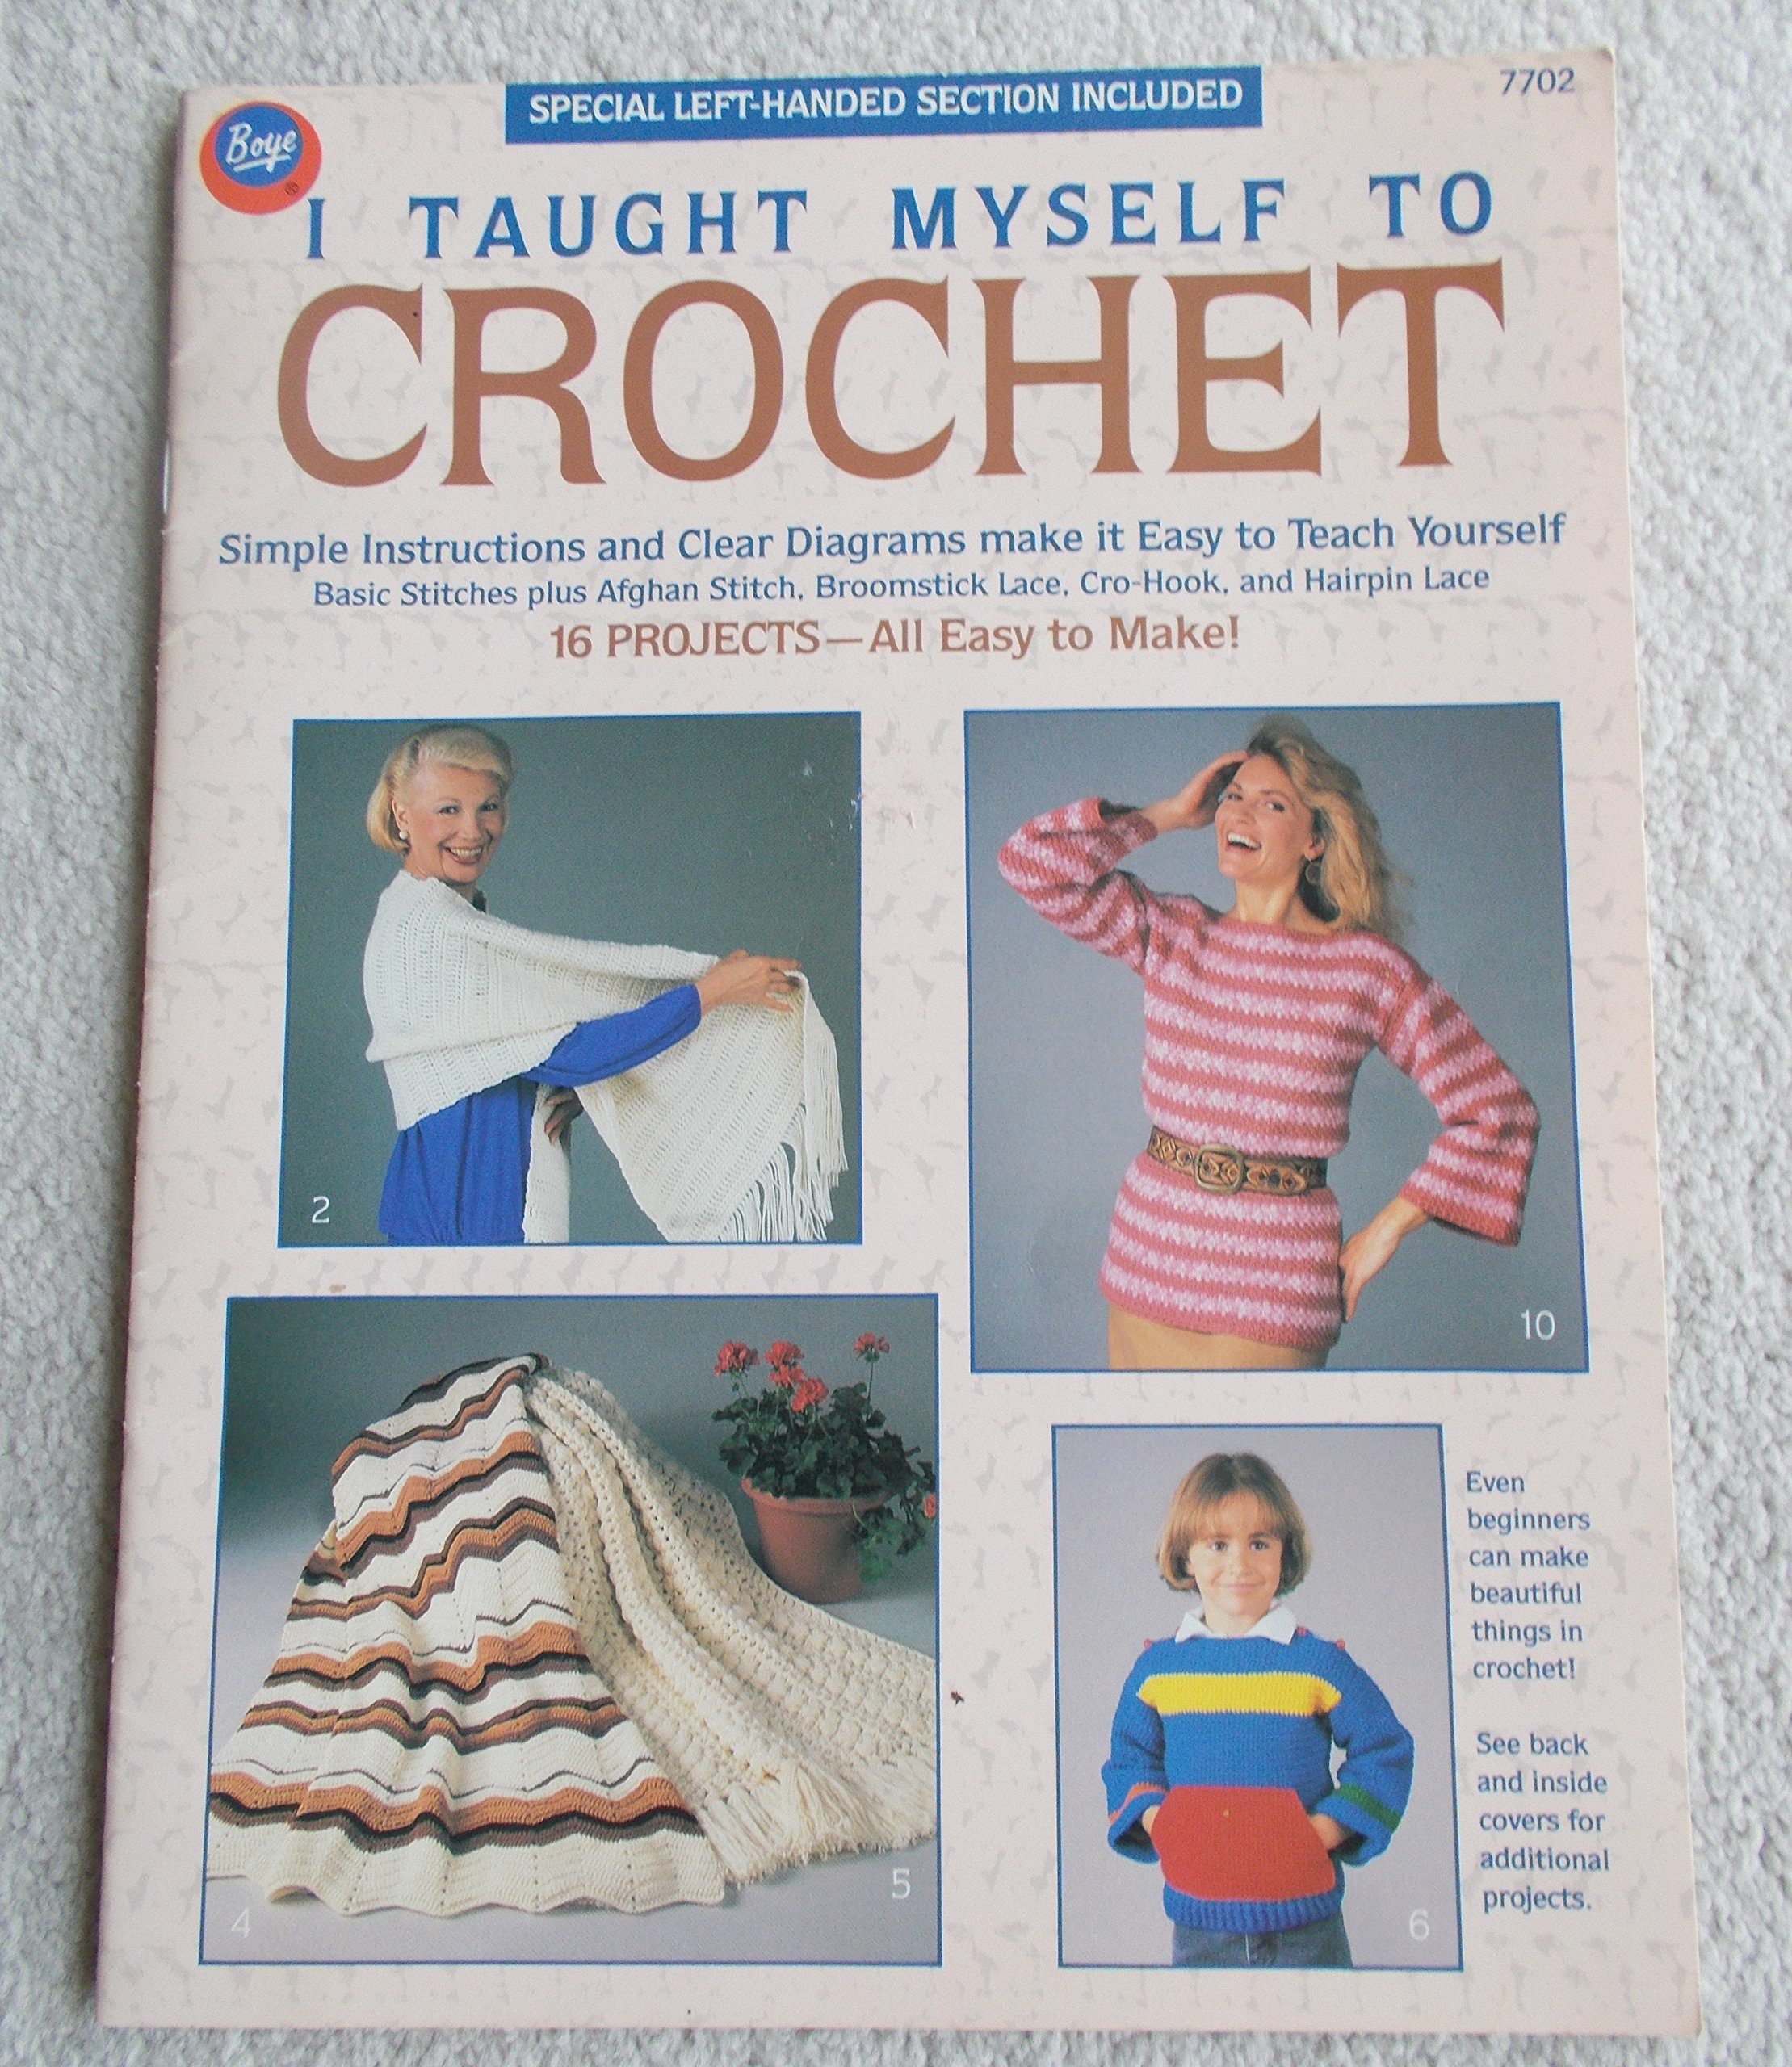 I Taught Myself To Crochet Boye Booklet 16 Projects Instructions Diagrams